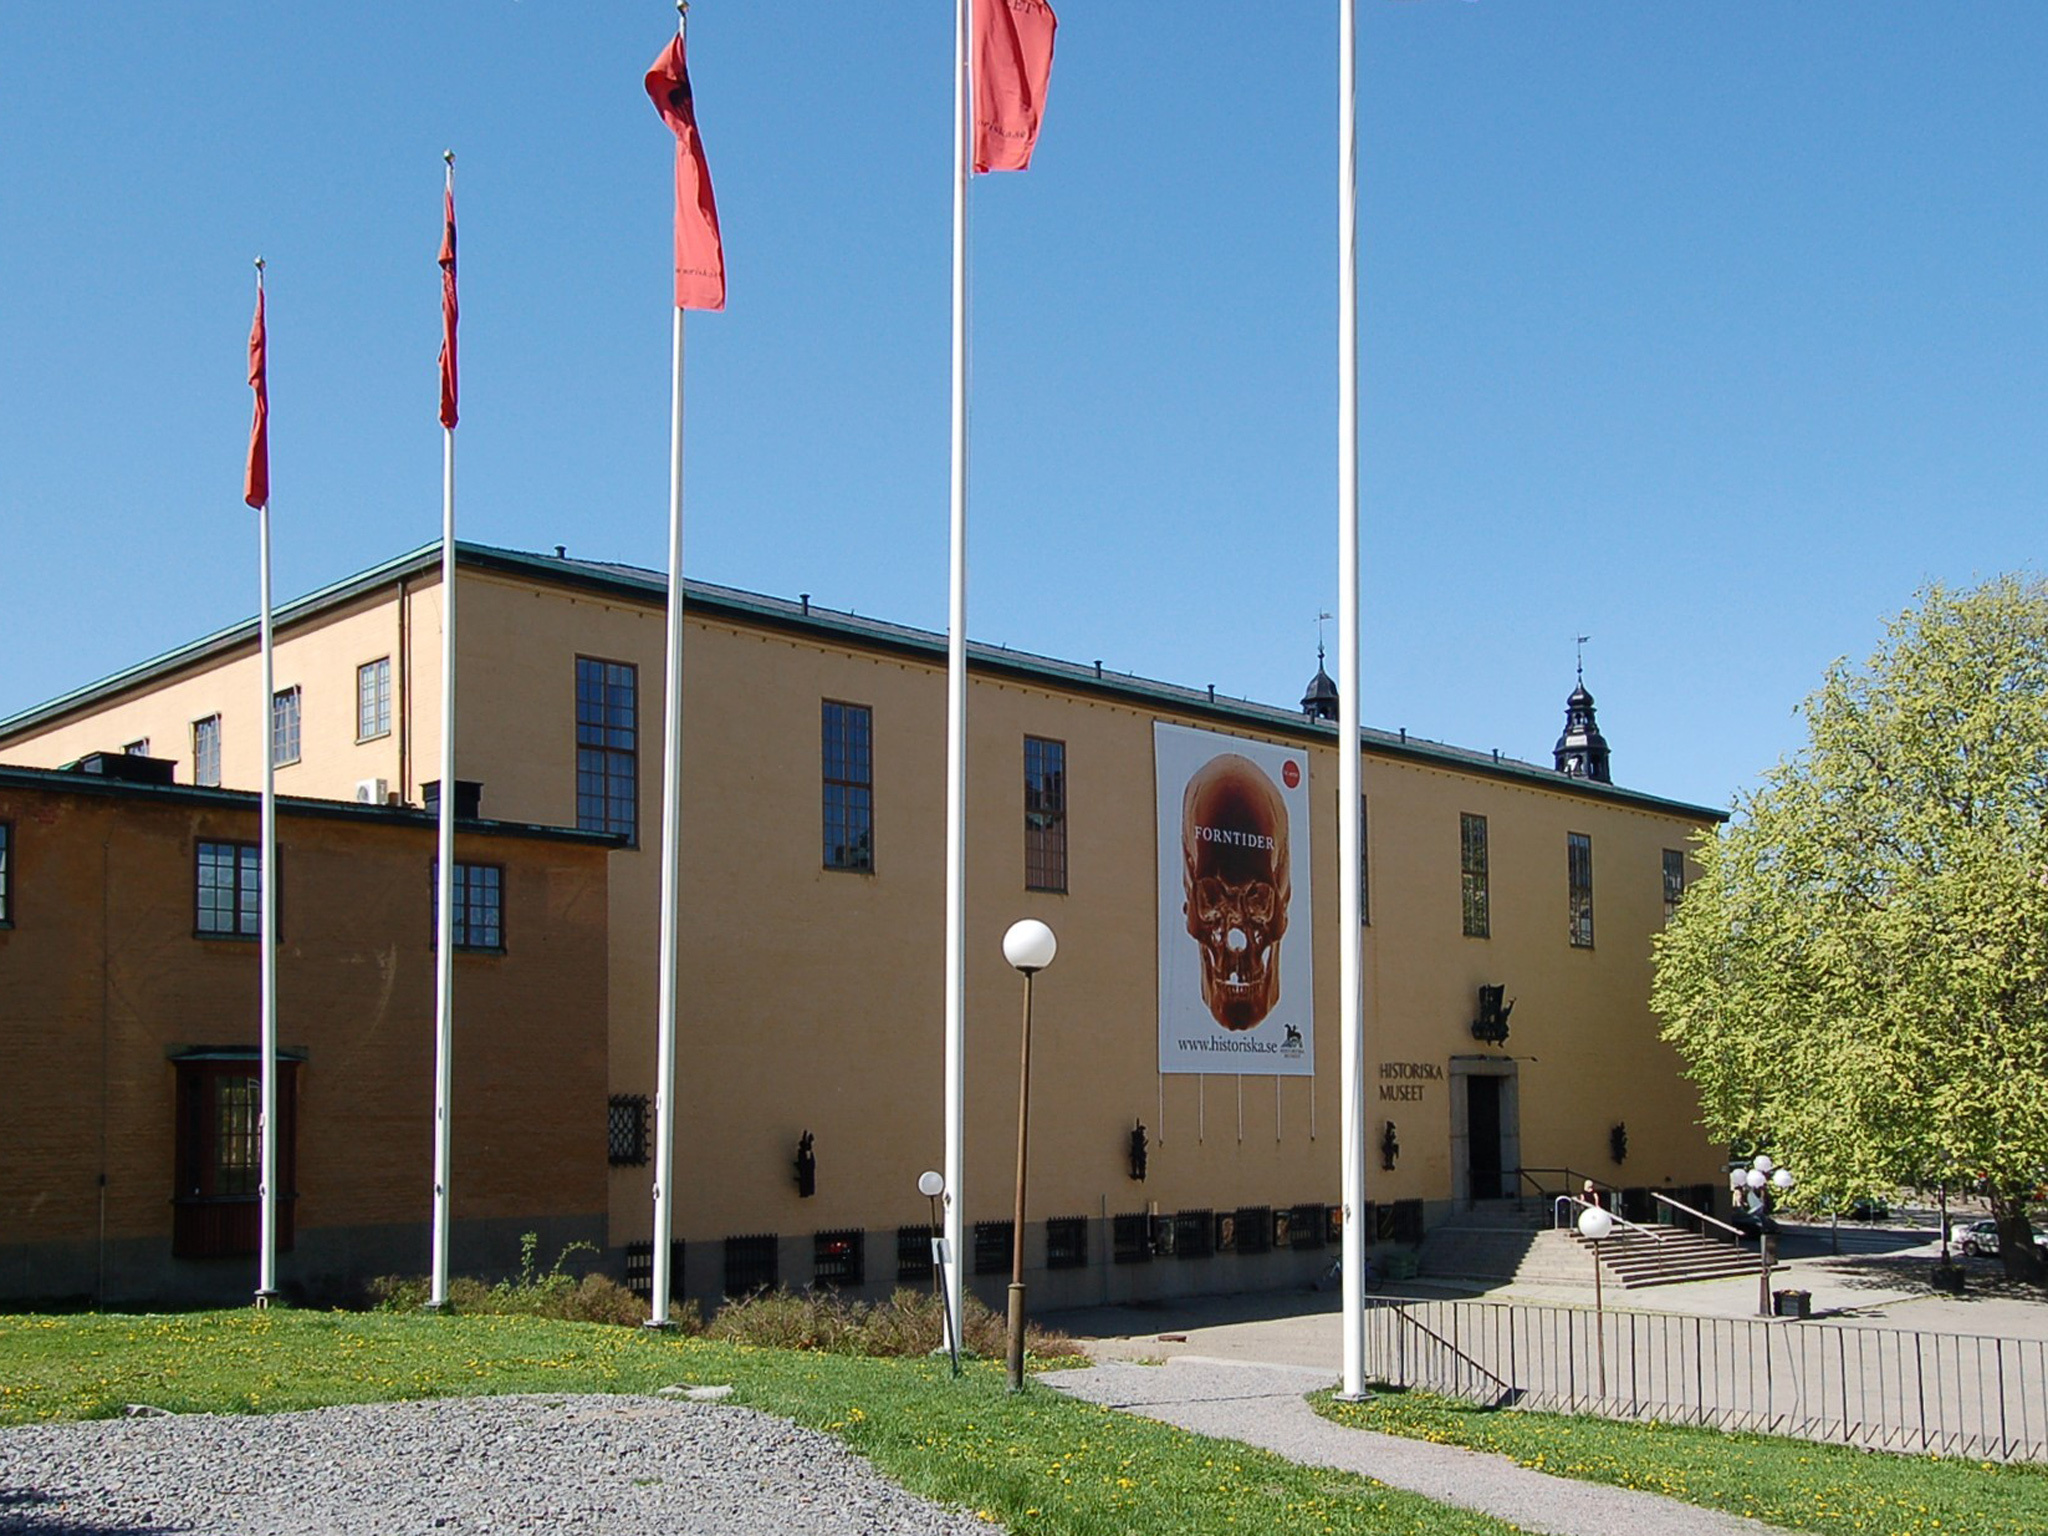 The exterior of the Swedish History Museum in Stockholm